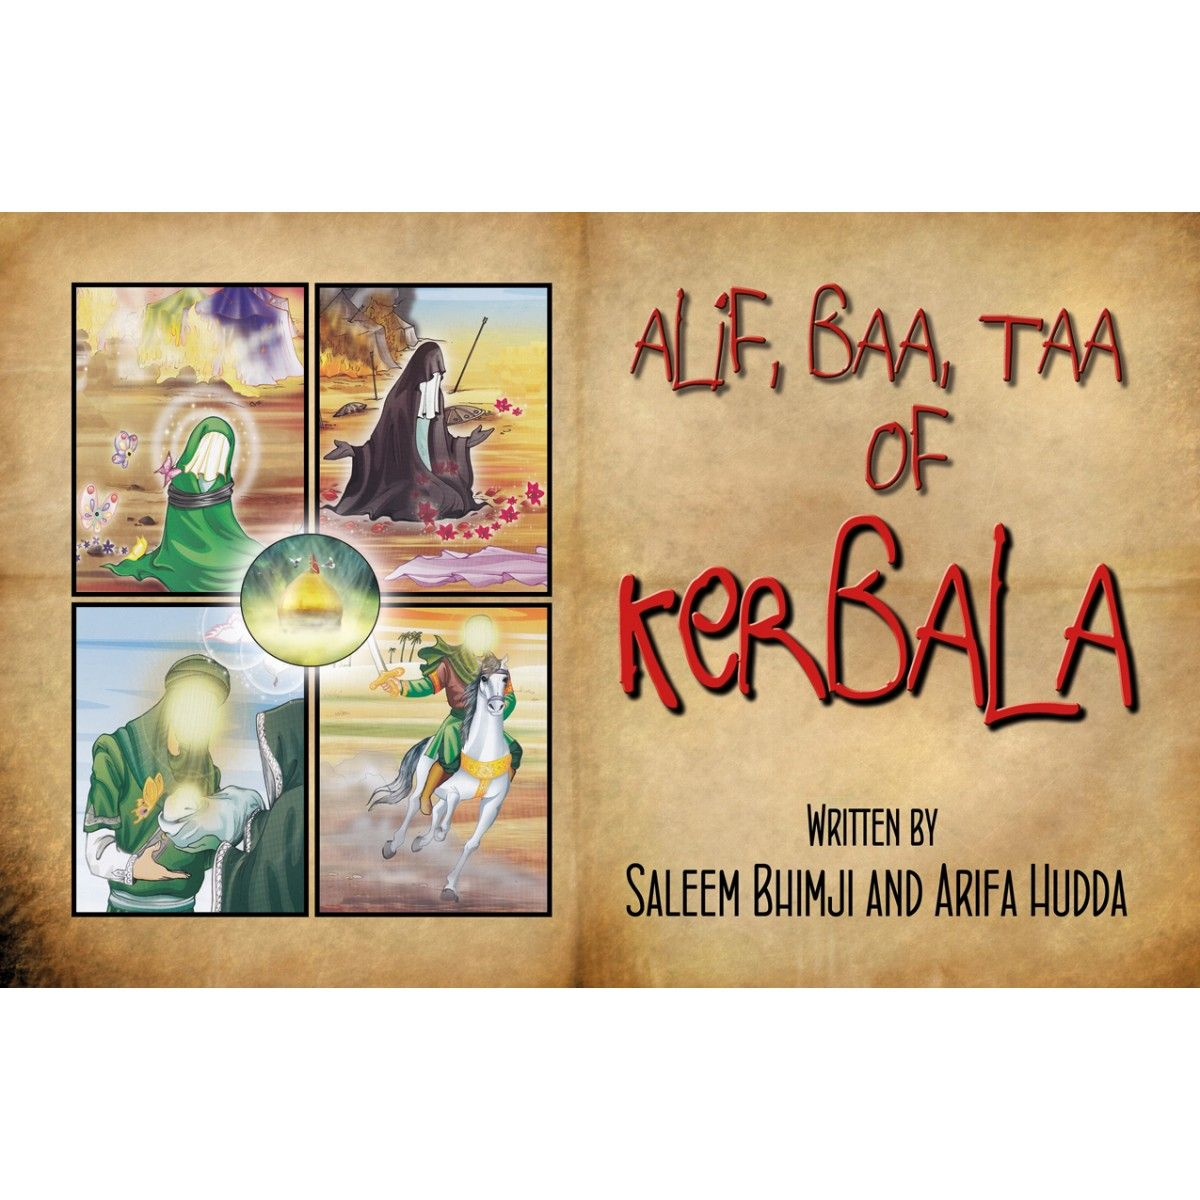 Alif Baa Taa Of Kerbala A Great Book For The Younger